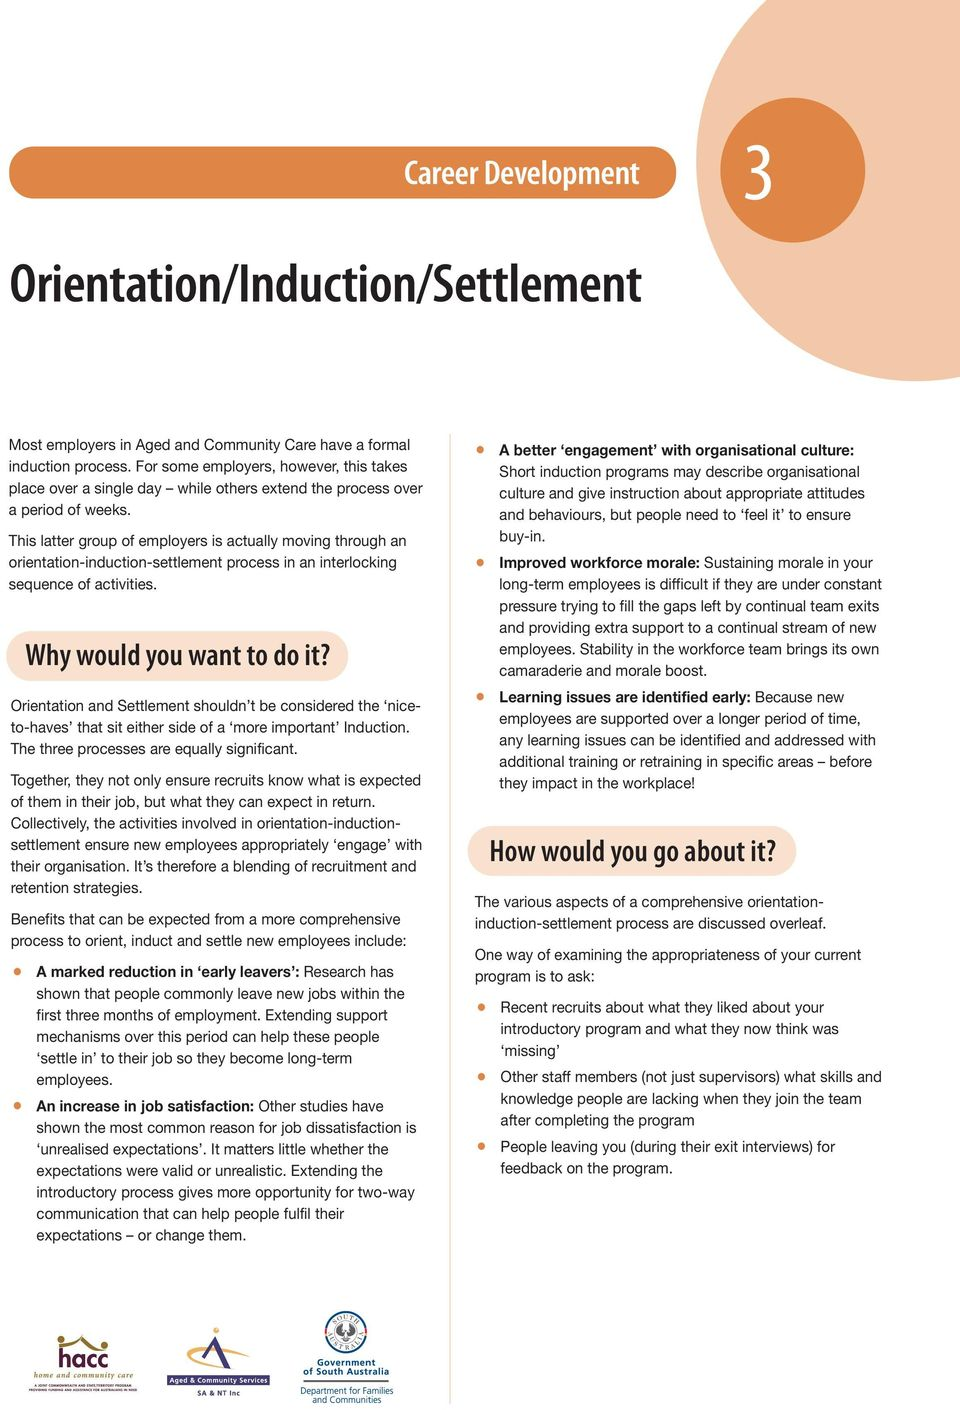 This latter group of employers is actually moving through an orientation-induction-settlement process in an interlocking sequence of activities. Why would you want to do it?